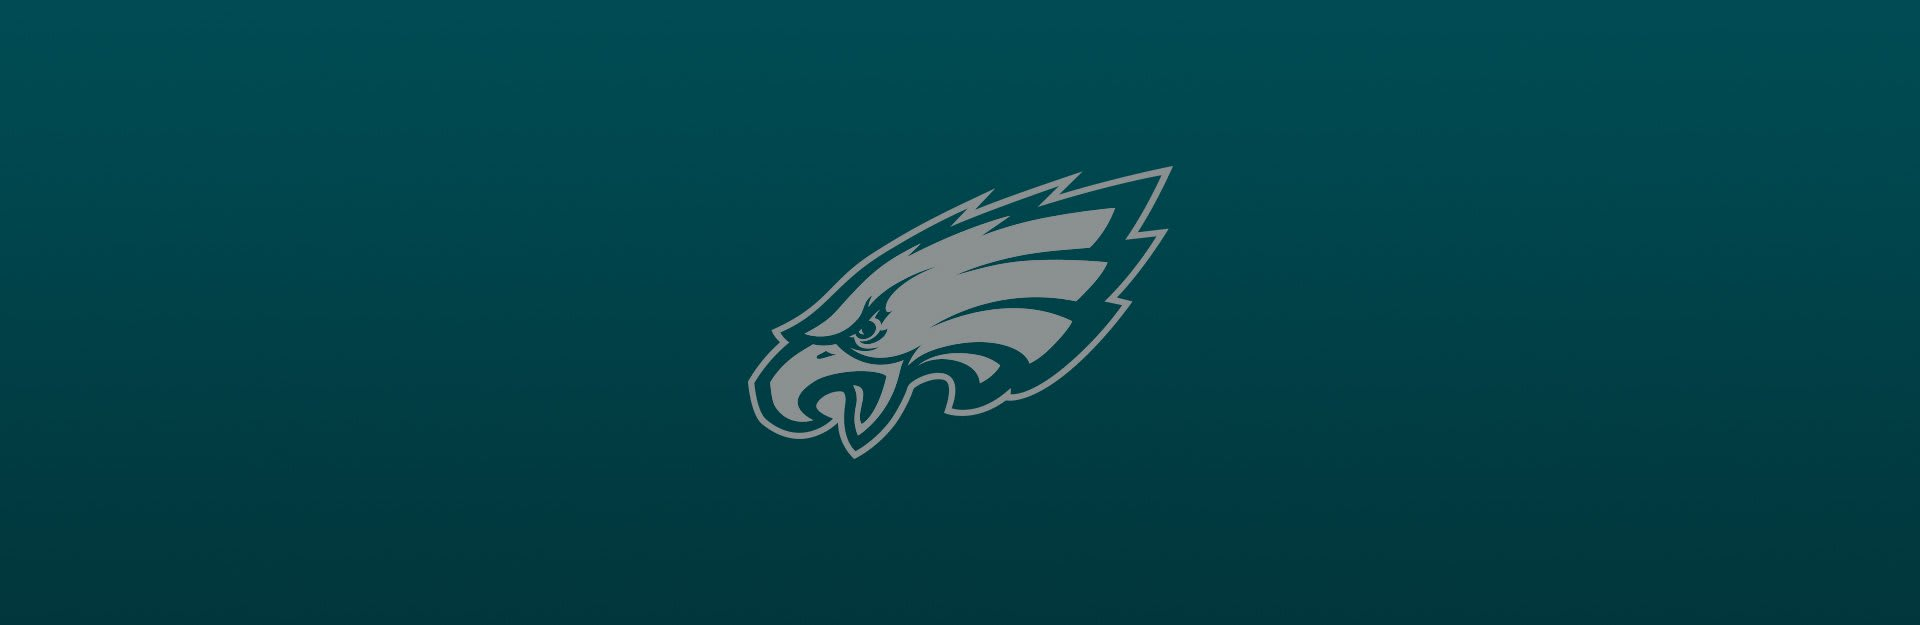 Philadelphia Eagles logo overlaid on blue-green background